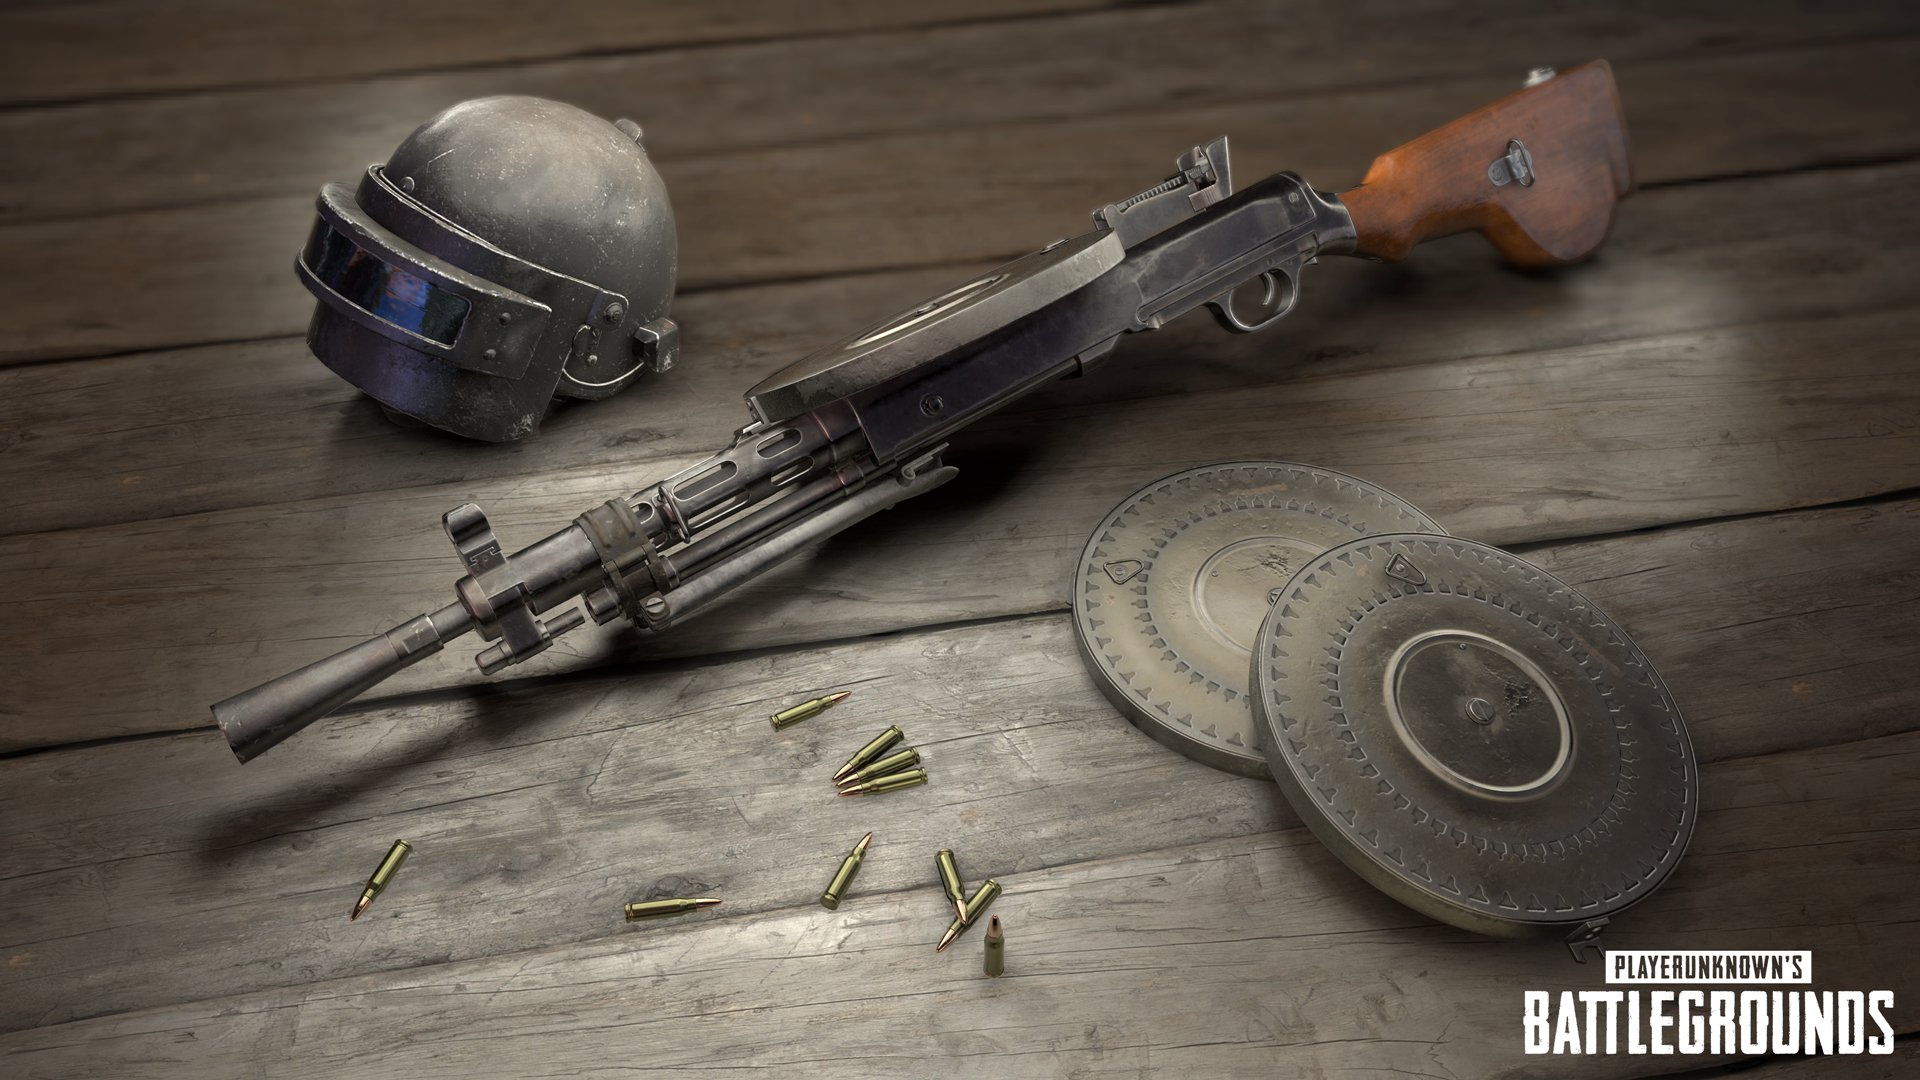 The Next Weapon Is The AUG A3, A Crate Only Assault Rifle That Fires  5.56mm. It Comes With A 30 Round Magazine By Default, Upgradeable To A  40 Round When ...